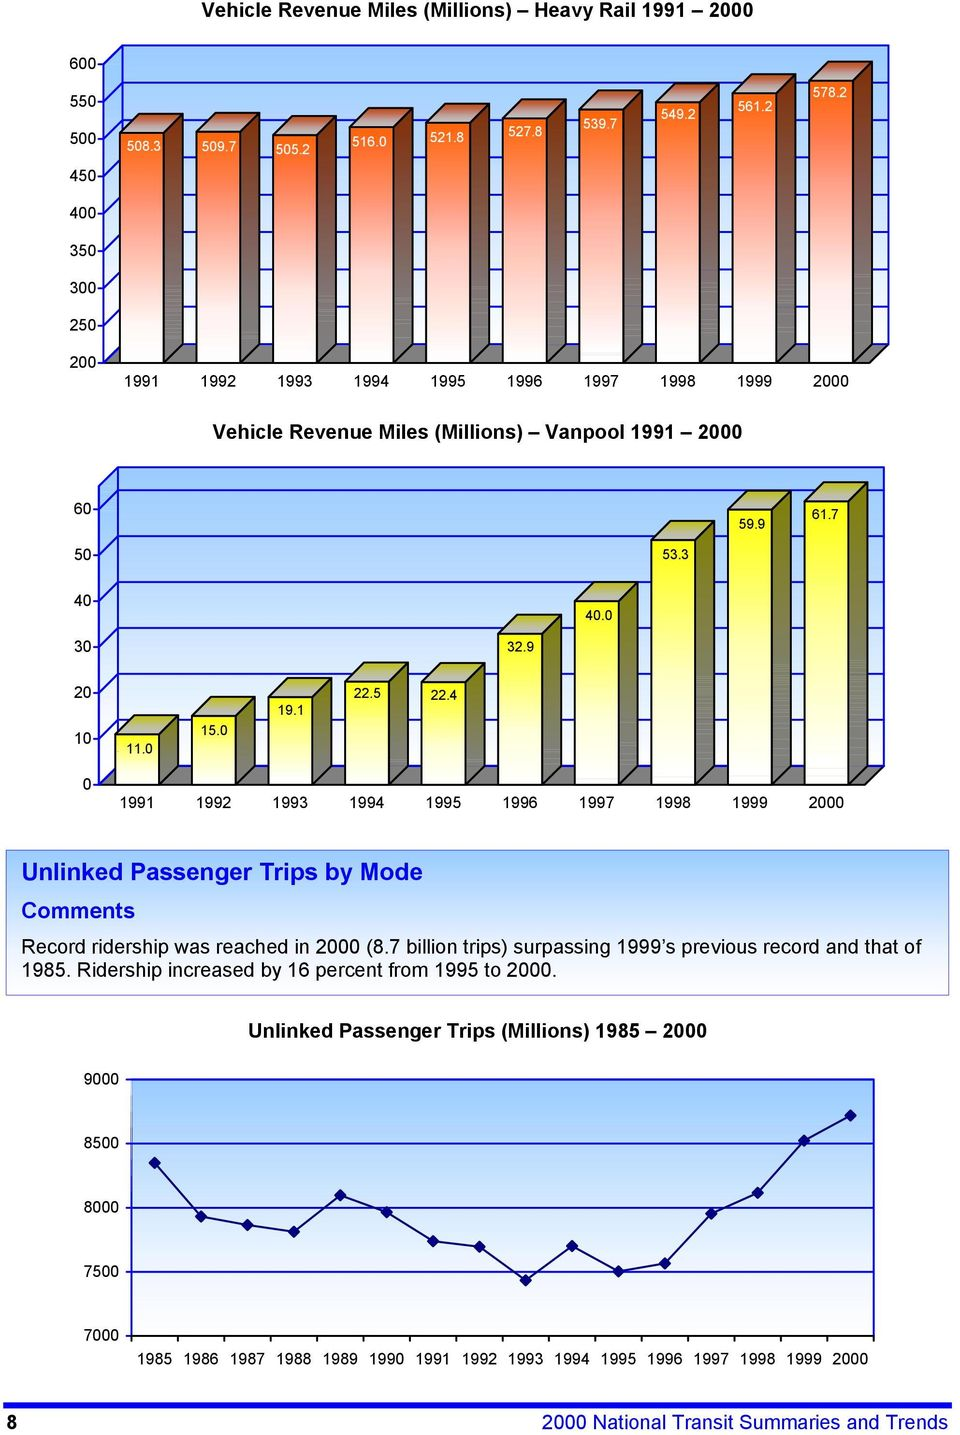 4 0 1991 1992 1993 1994 1995 1996 1997 1998 1999 2000 Trips by Mode Comments Record ridership was reached in 2000 (8.